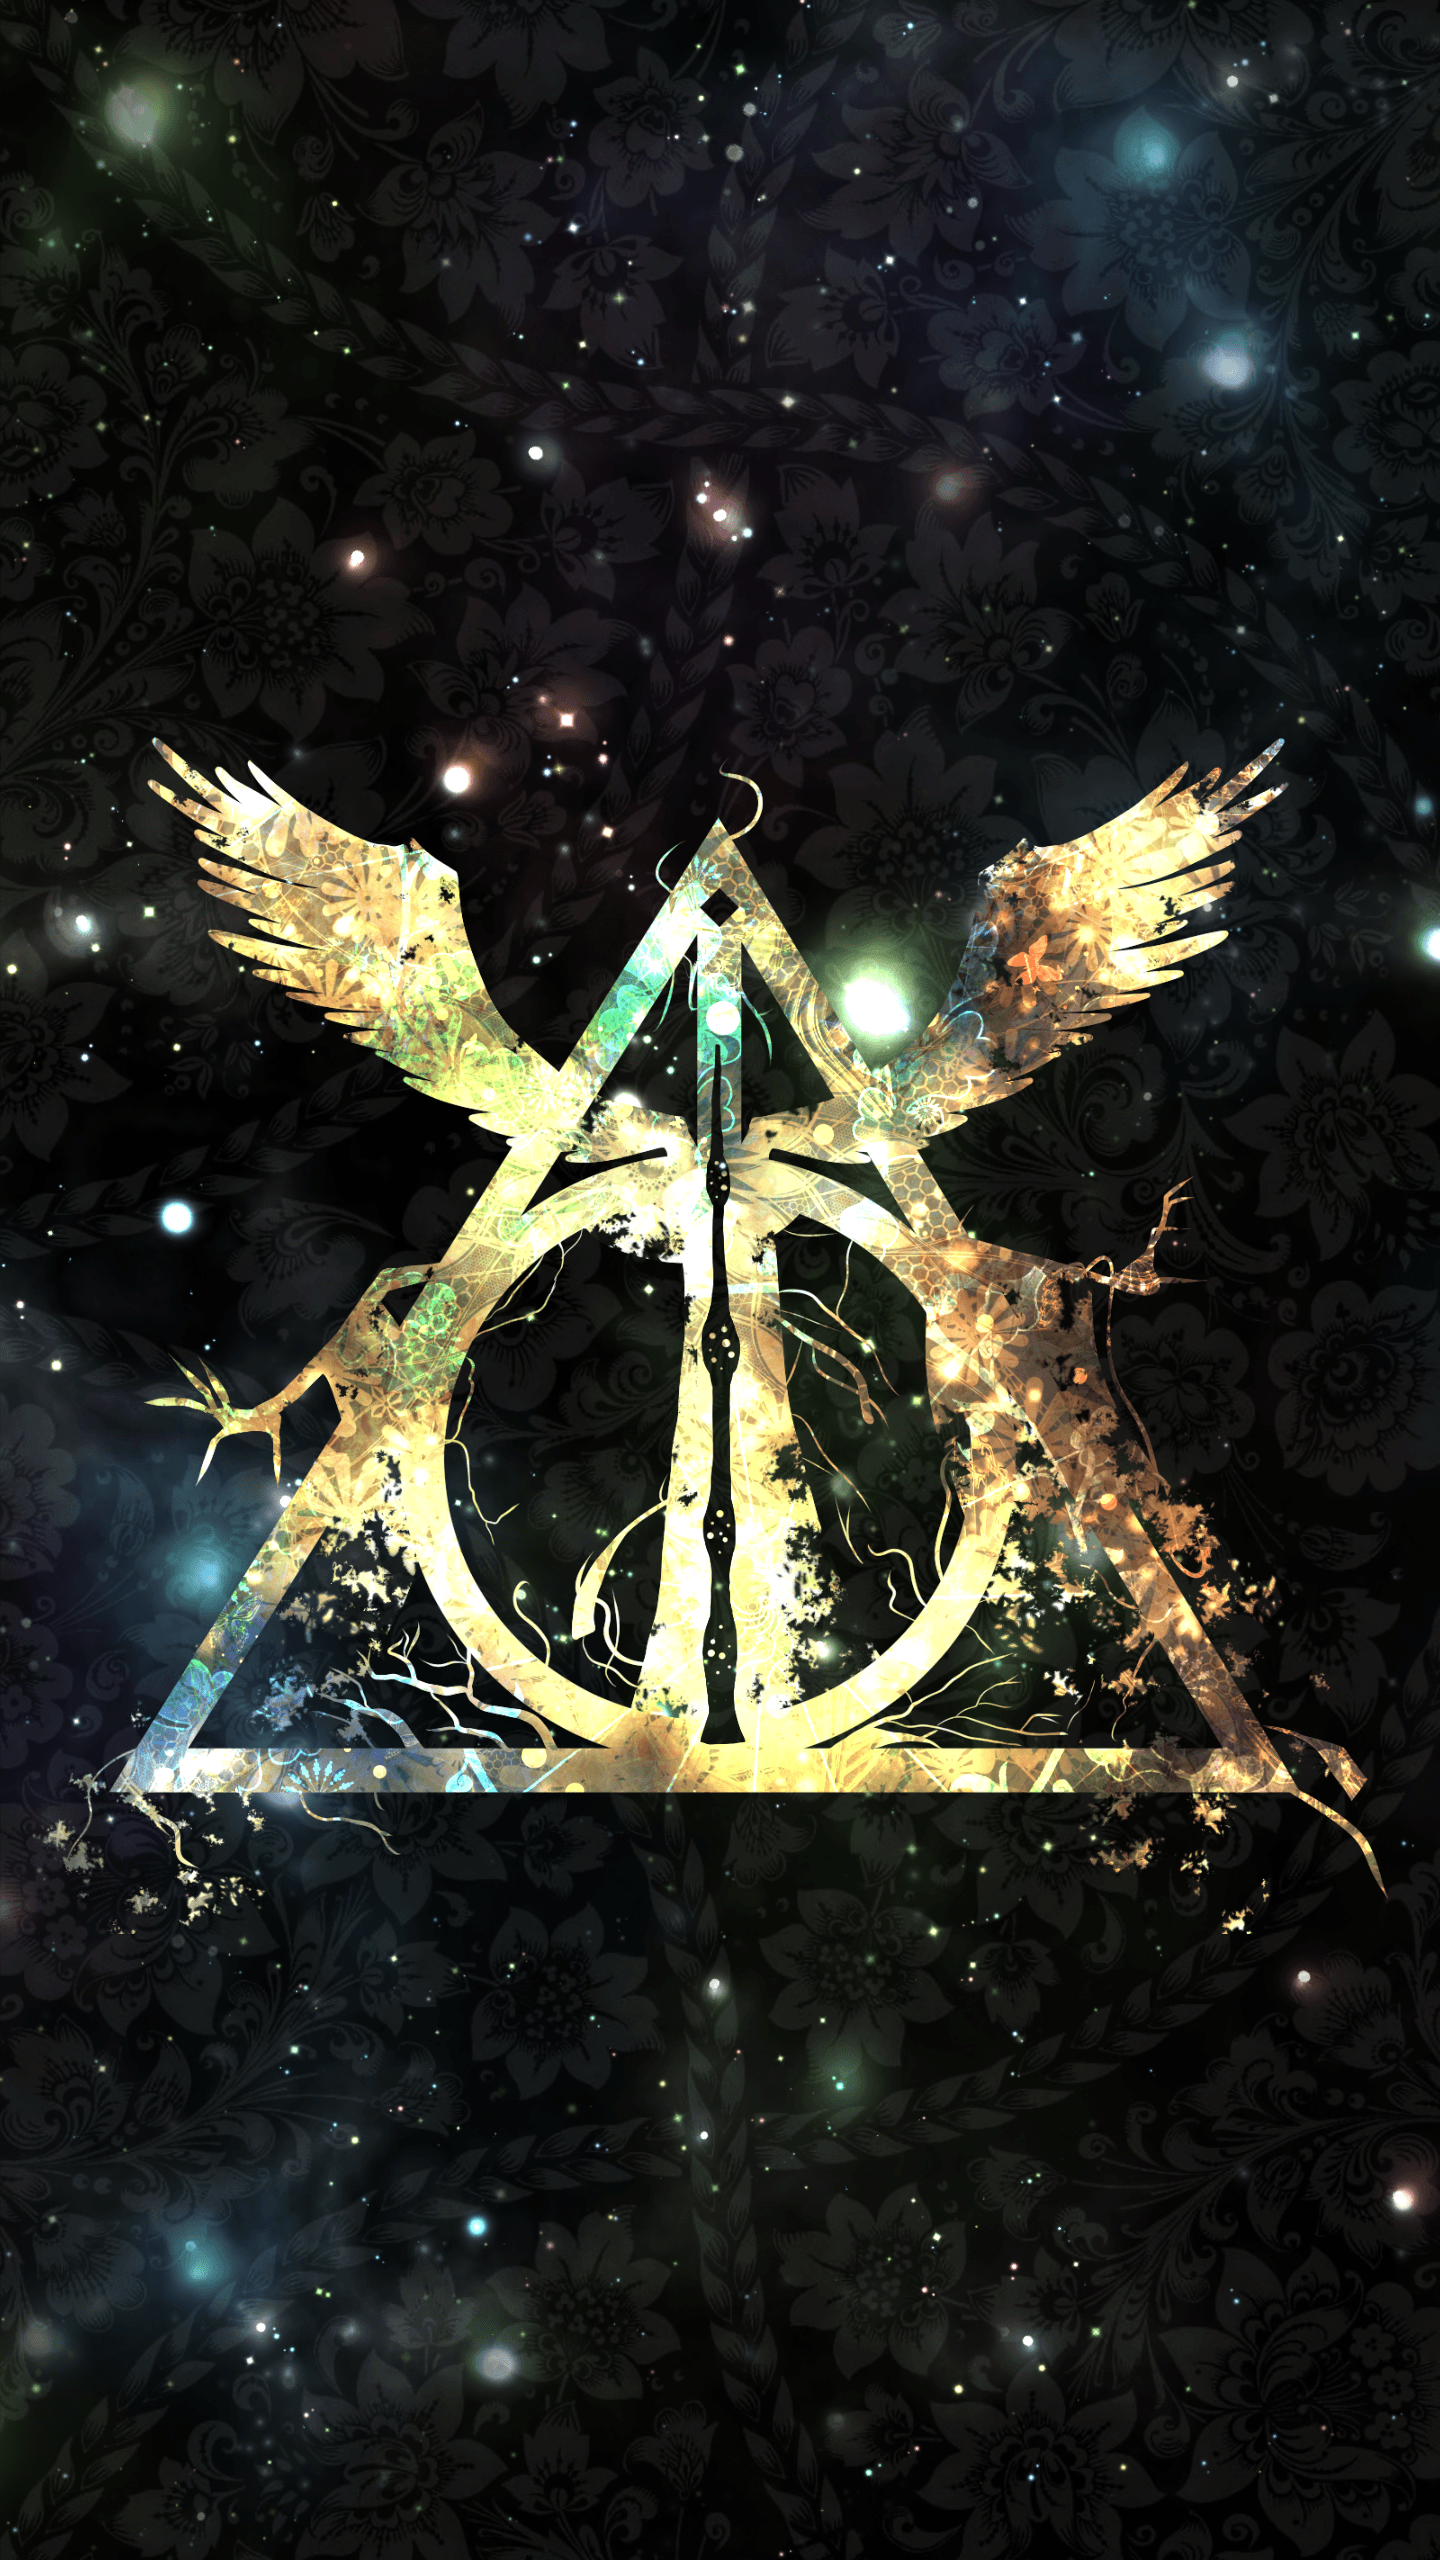 Deathly Hallows Symbol Wallpapers - Wallpaper Cave